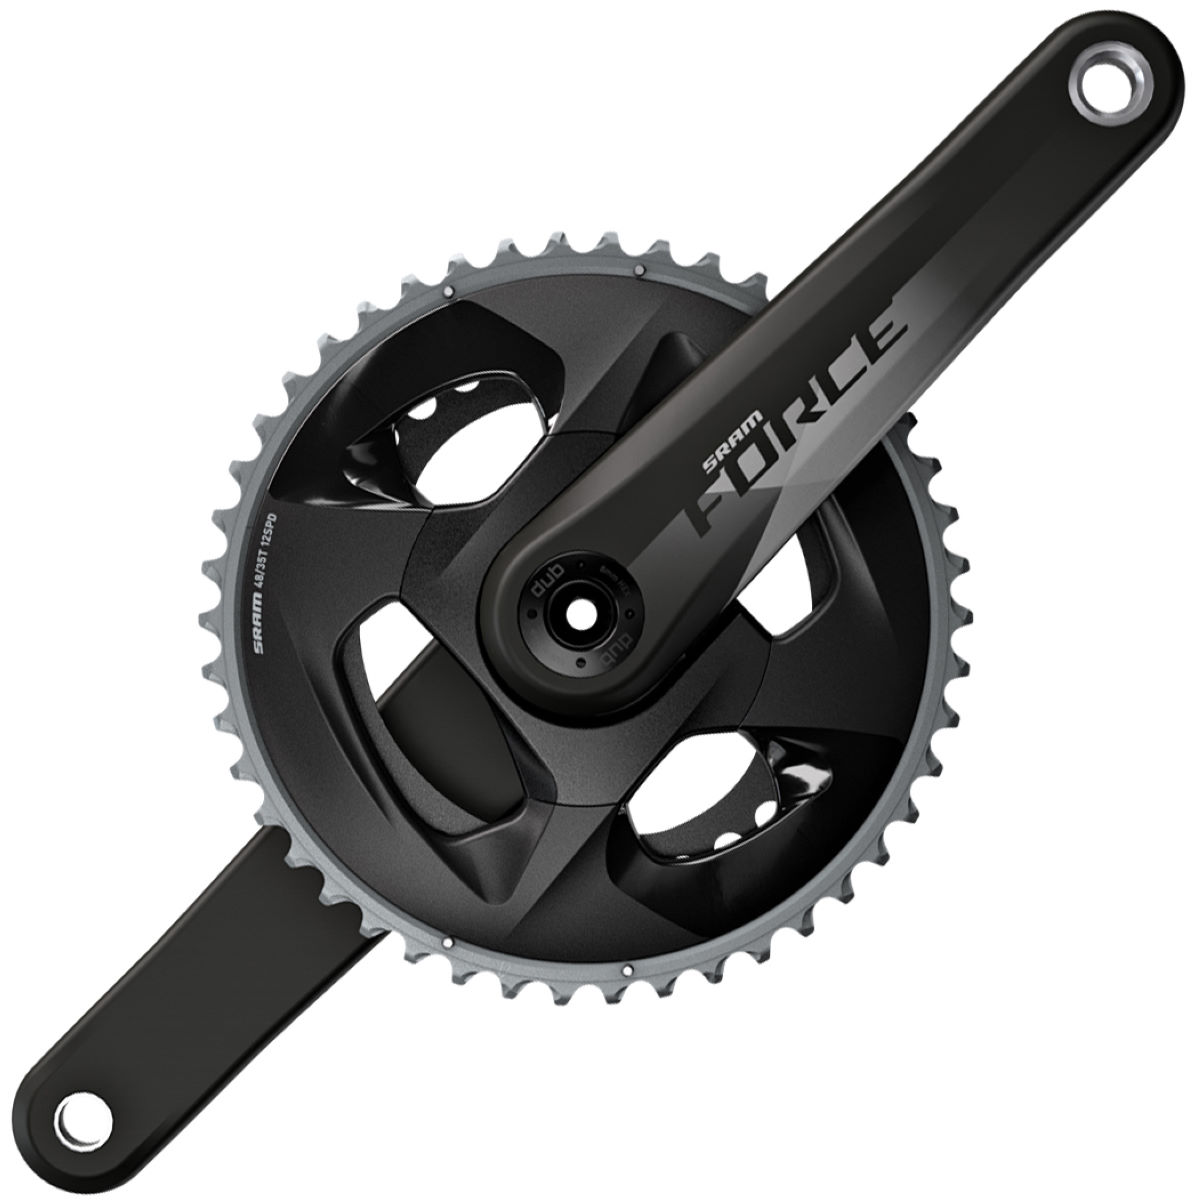 SRAM SRAM Force AXS DUB 12 Speed Crankset   Cranksets